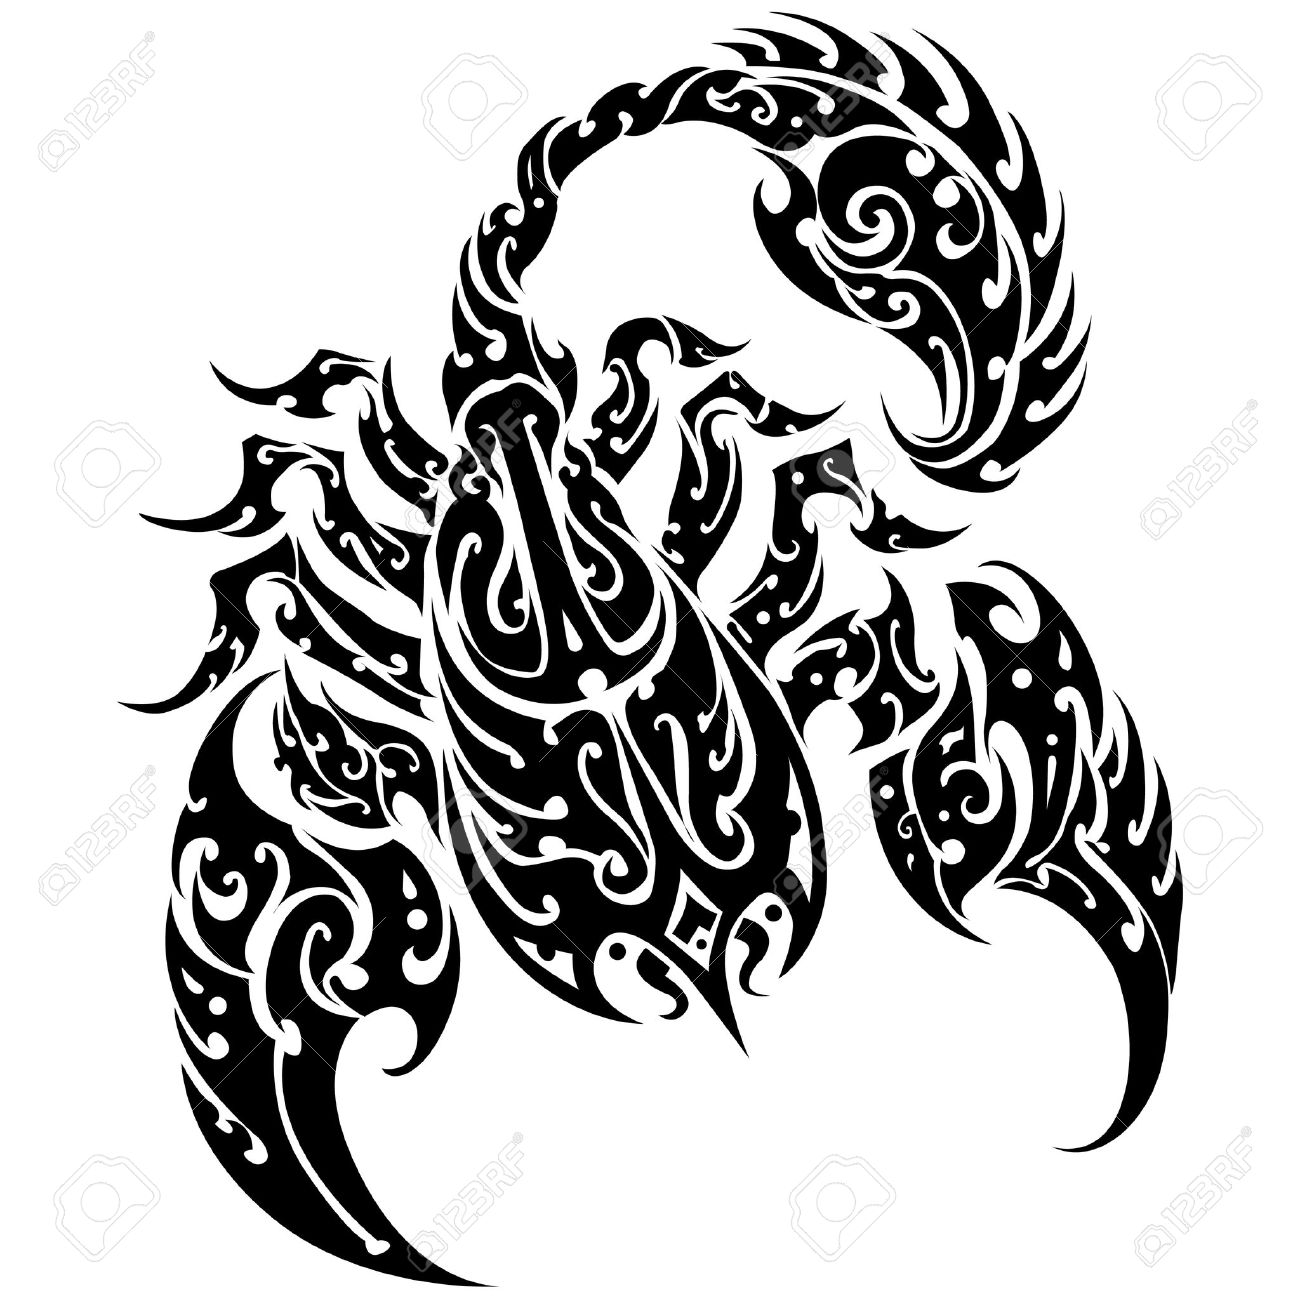 Scorpion Tattoo on a Isolated Background Abstract Vector Illustration of Scorpion - 22612371